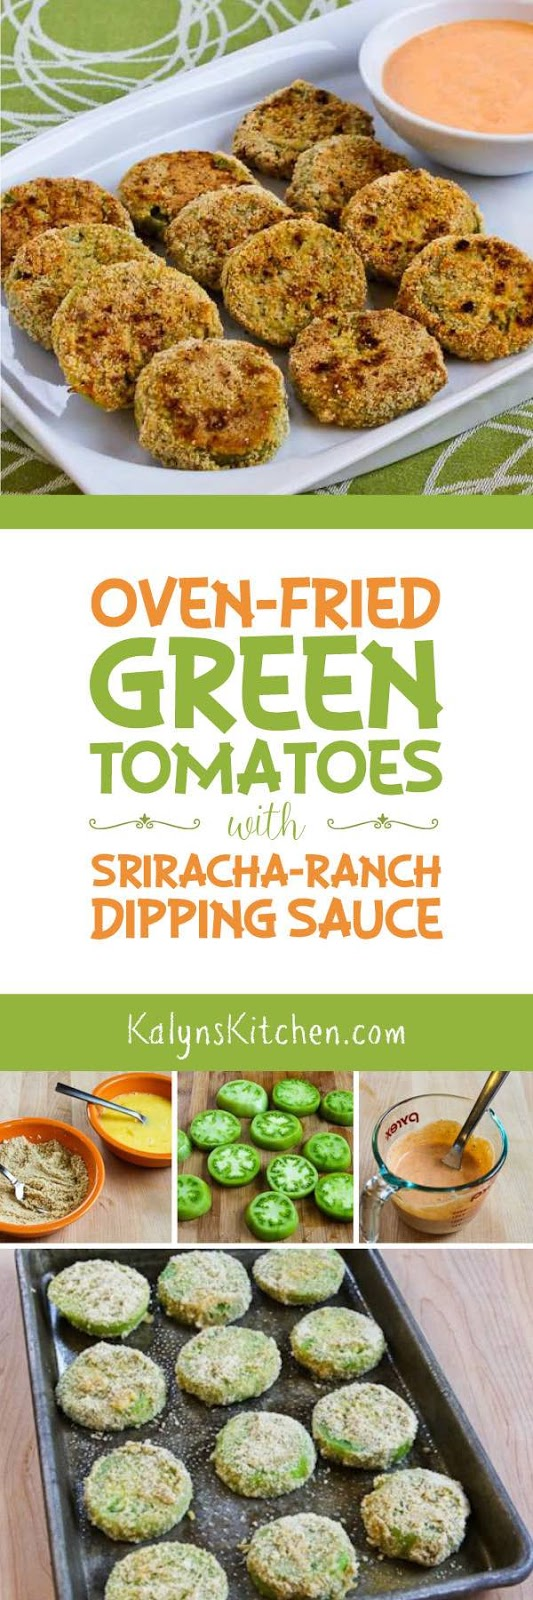 ... Kitchen®: Oven-Fried Green Tomatoes with Sriracha-Ranch Dipping Sauce